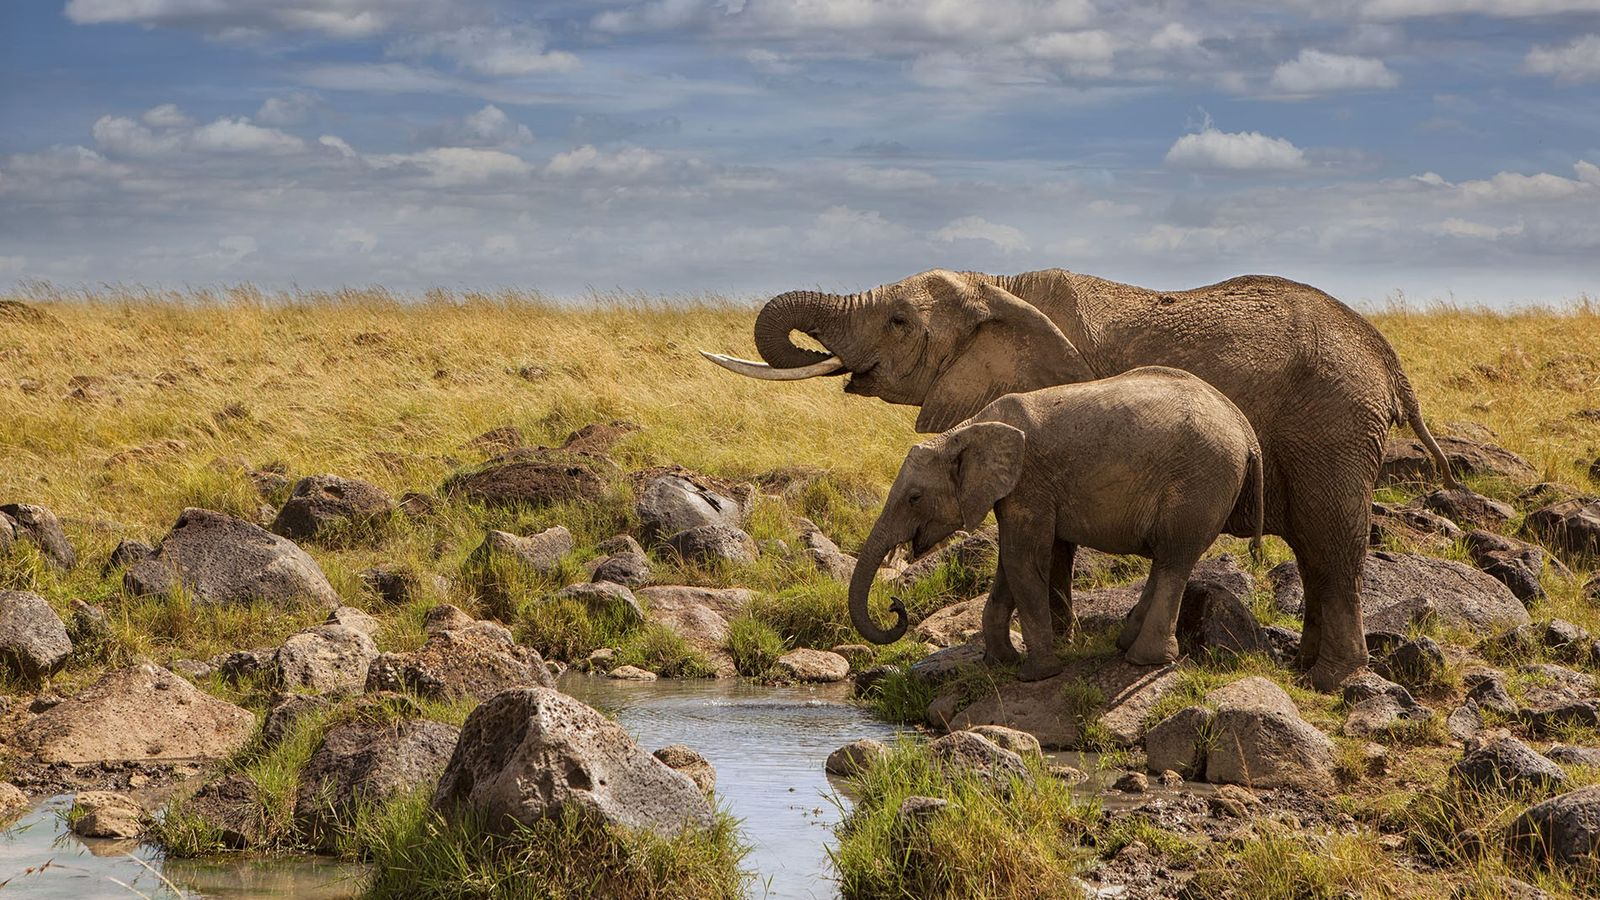 Live webcams set up in some of Africa's most diverse game reserves serve as a welcome ...